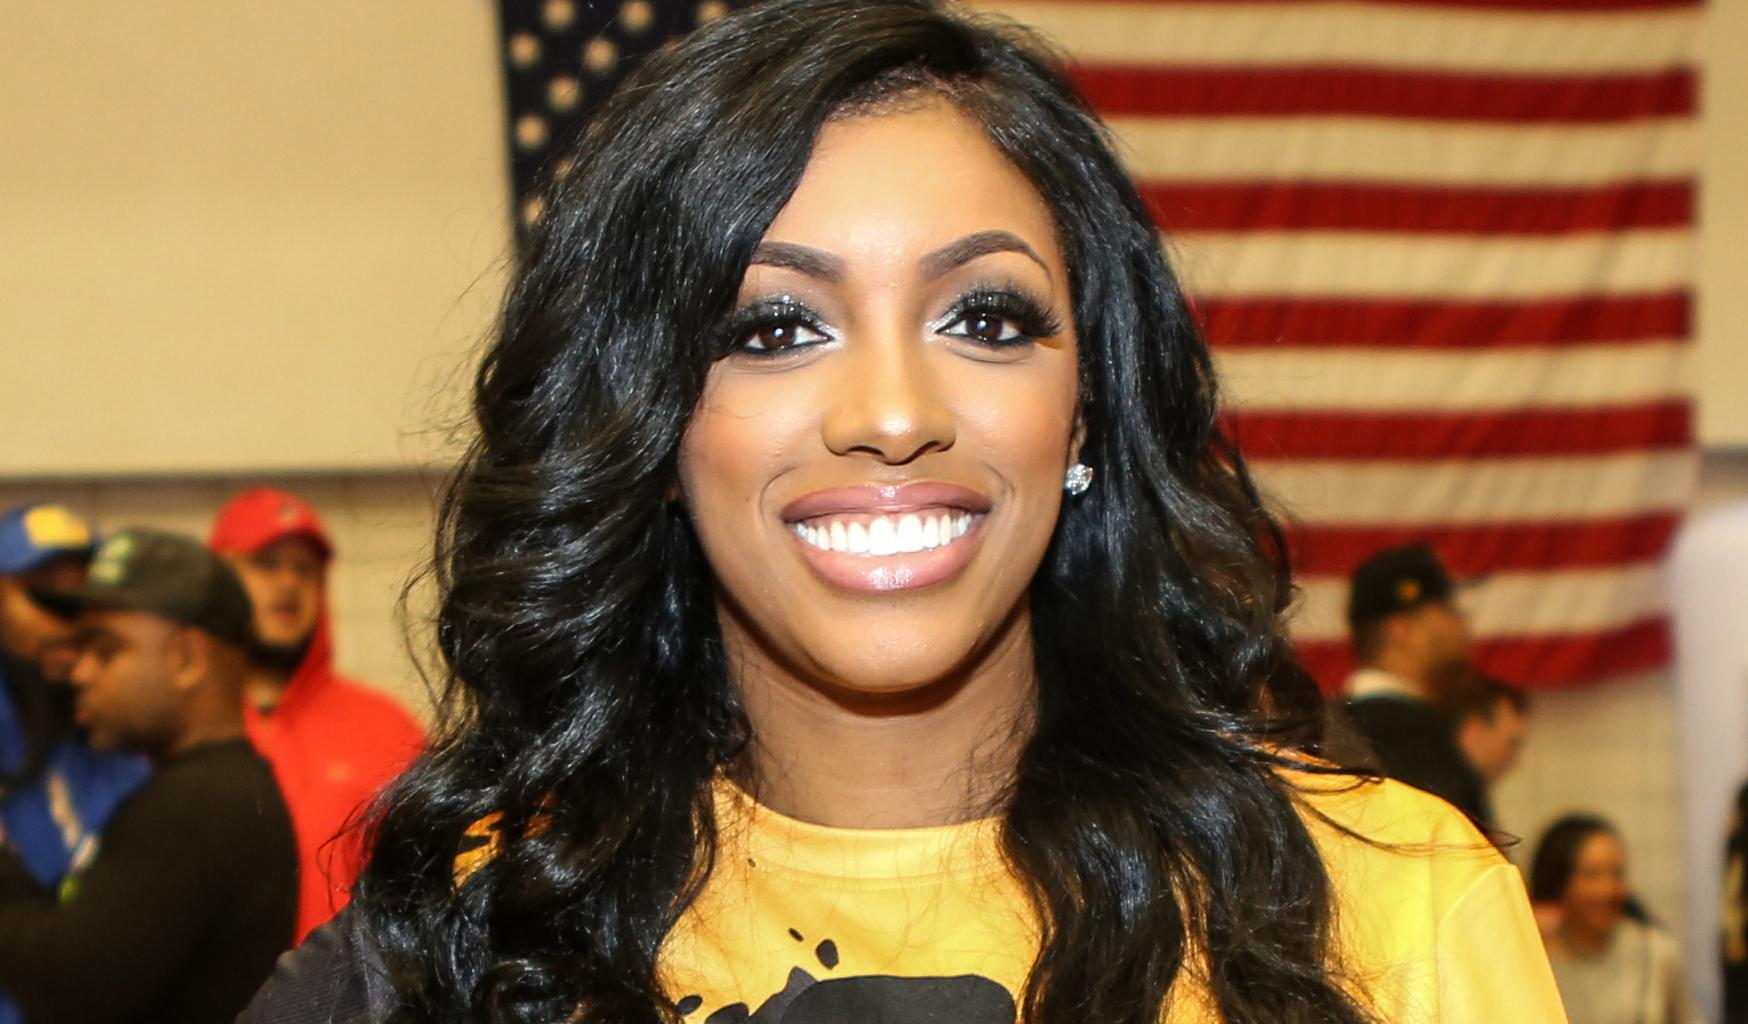 Porsha Williams Forgets All About Feuds And Gives A Shoutout To All Her 'Fellow Black Movers And Shakers Of 2018'